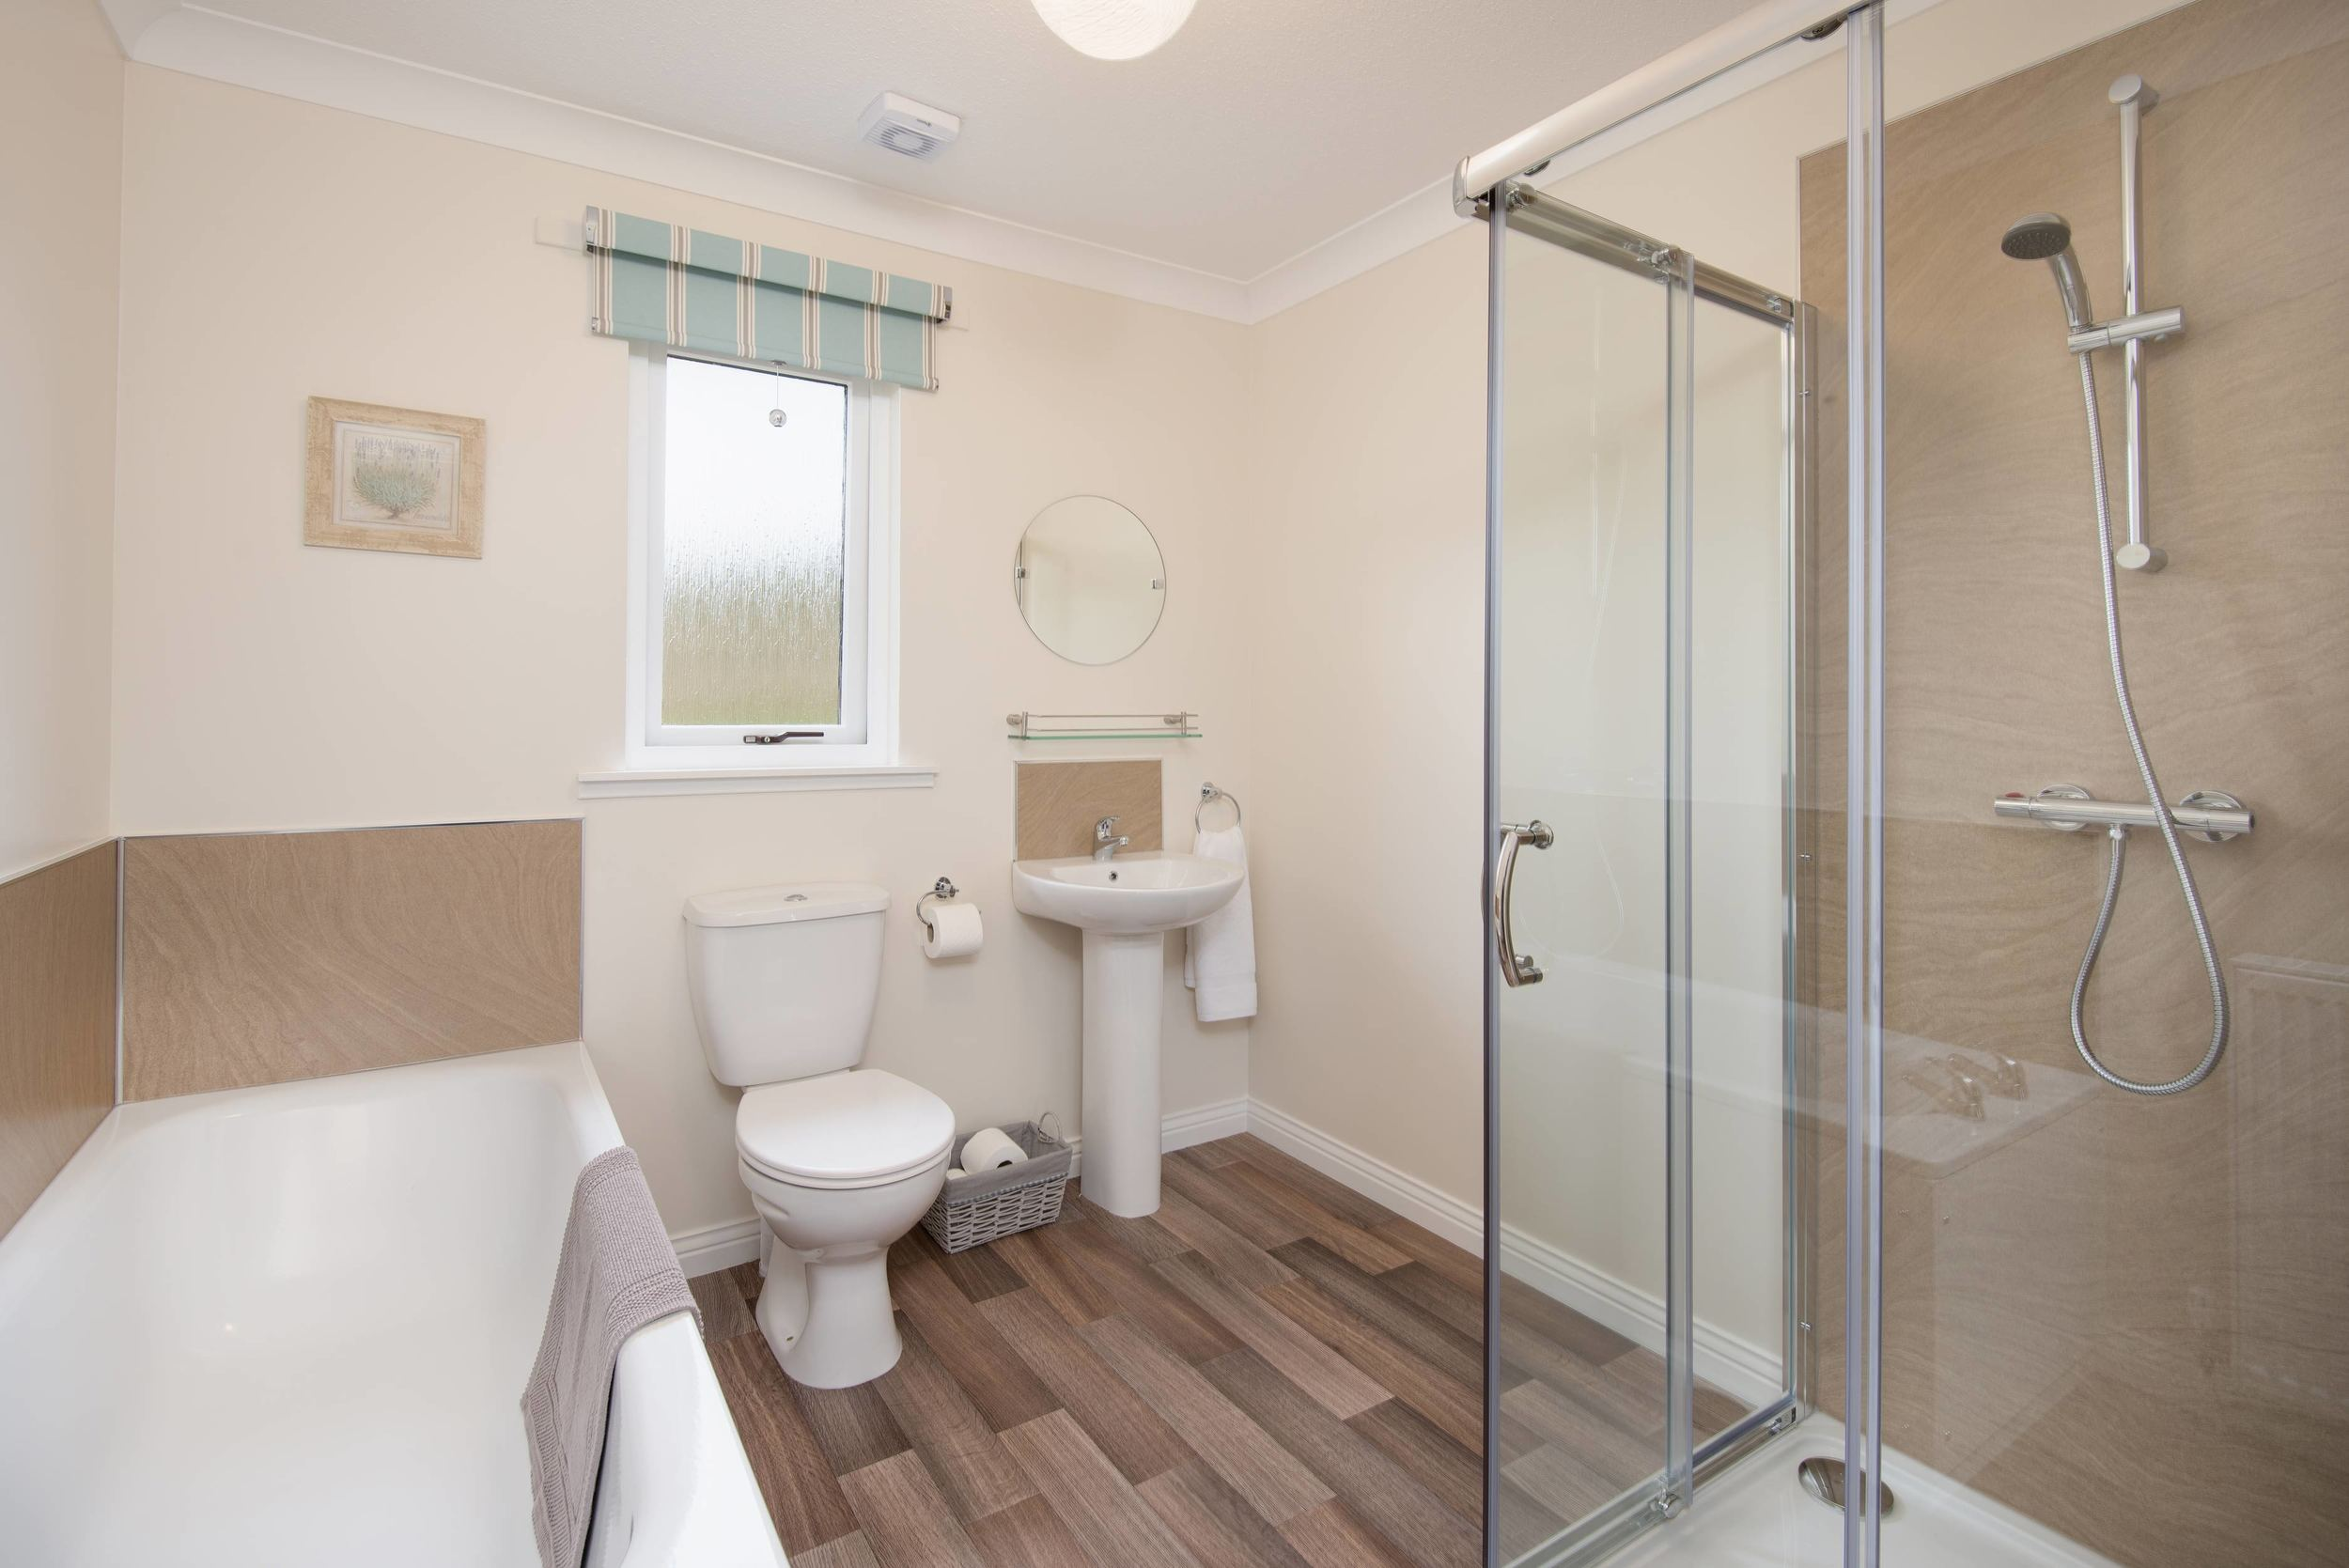 The bathroom is large, modern and provides a separate bath and shower